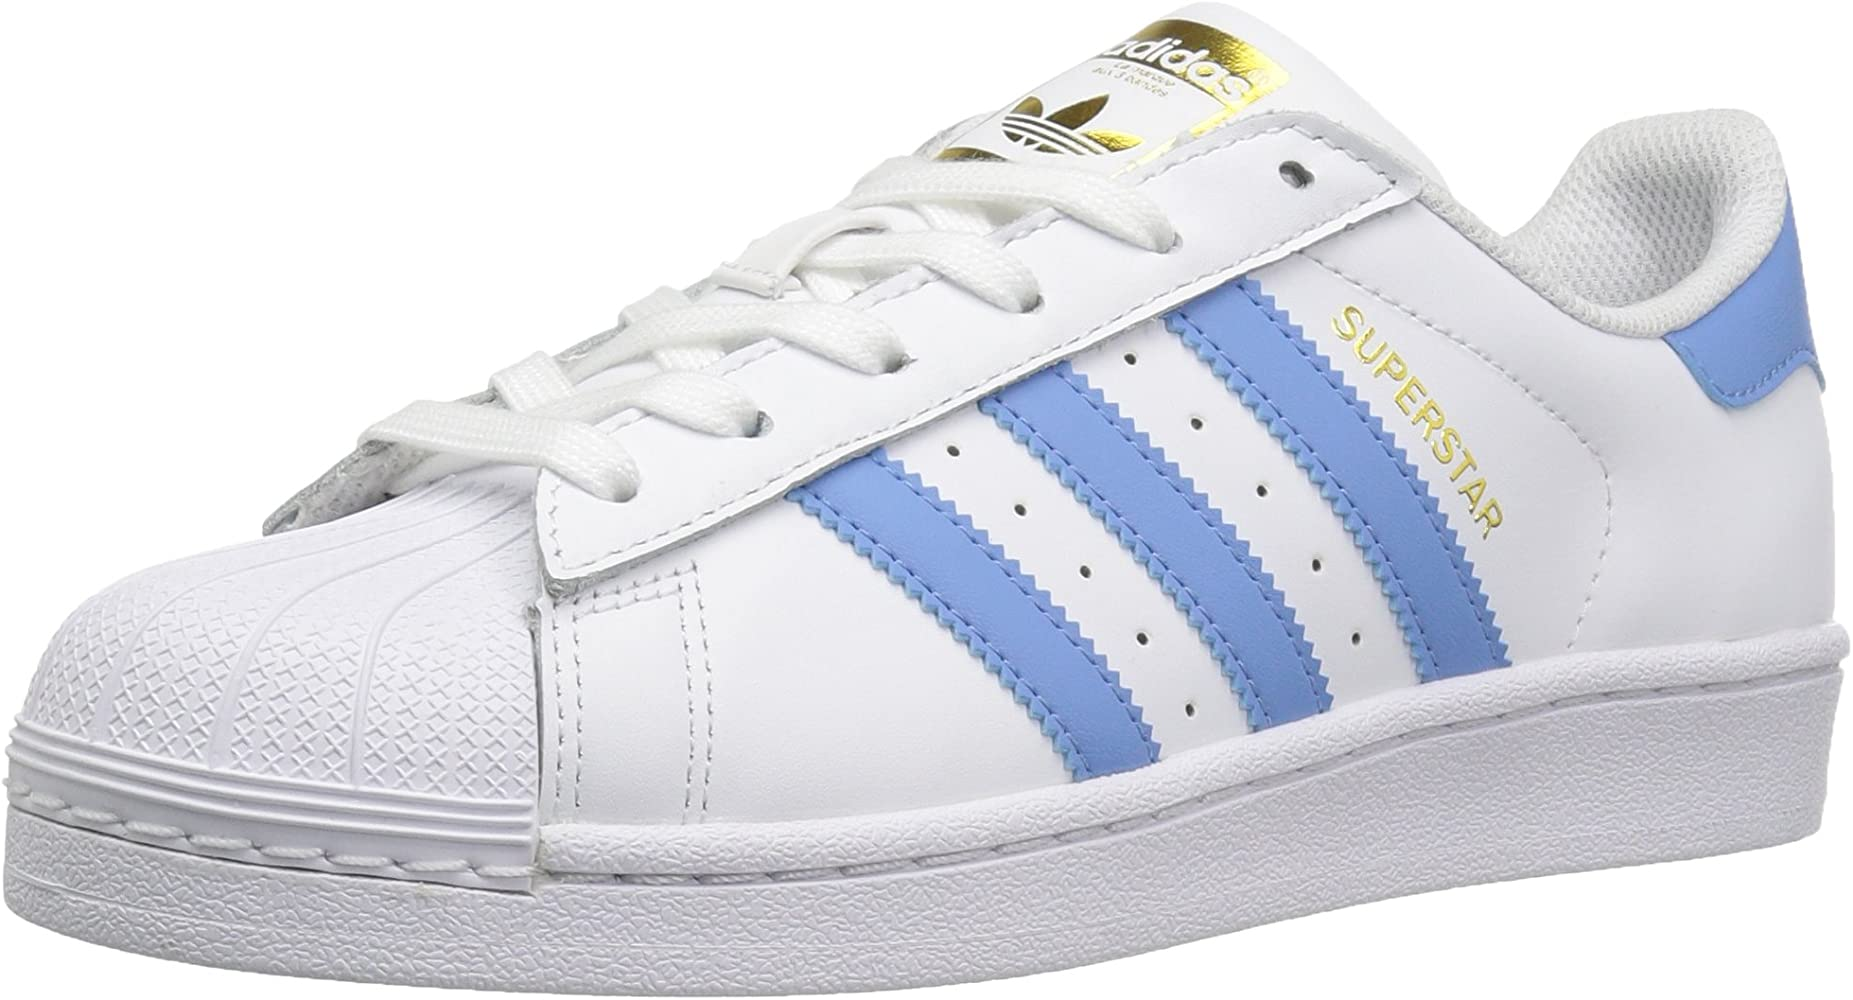 finest selection c2fd2 63e4c Women s Superstar Shoes Running, White Columbia Blue Metallic Gold, (10 M  US)